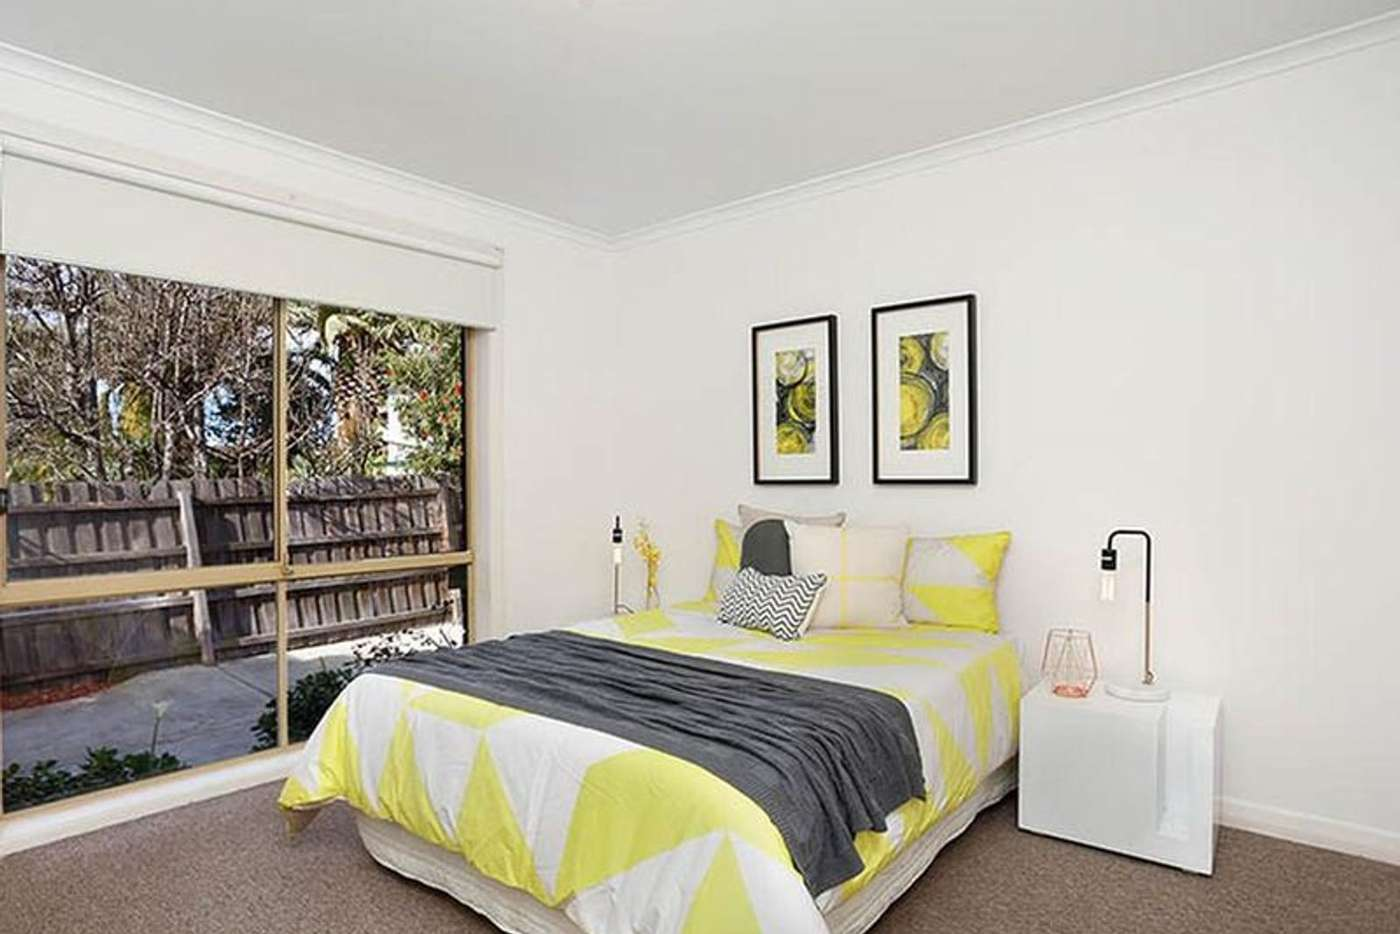 Sixth view of Homely unit listing, 3/14 Smart Street, Sunshine West VIC 3020